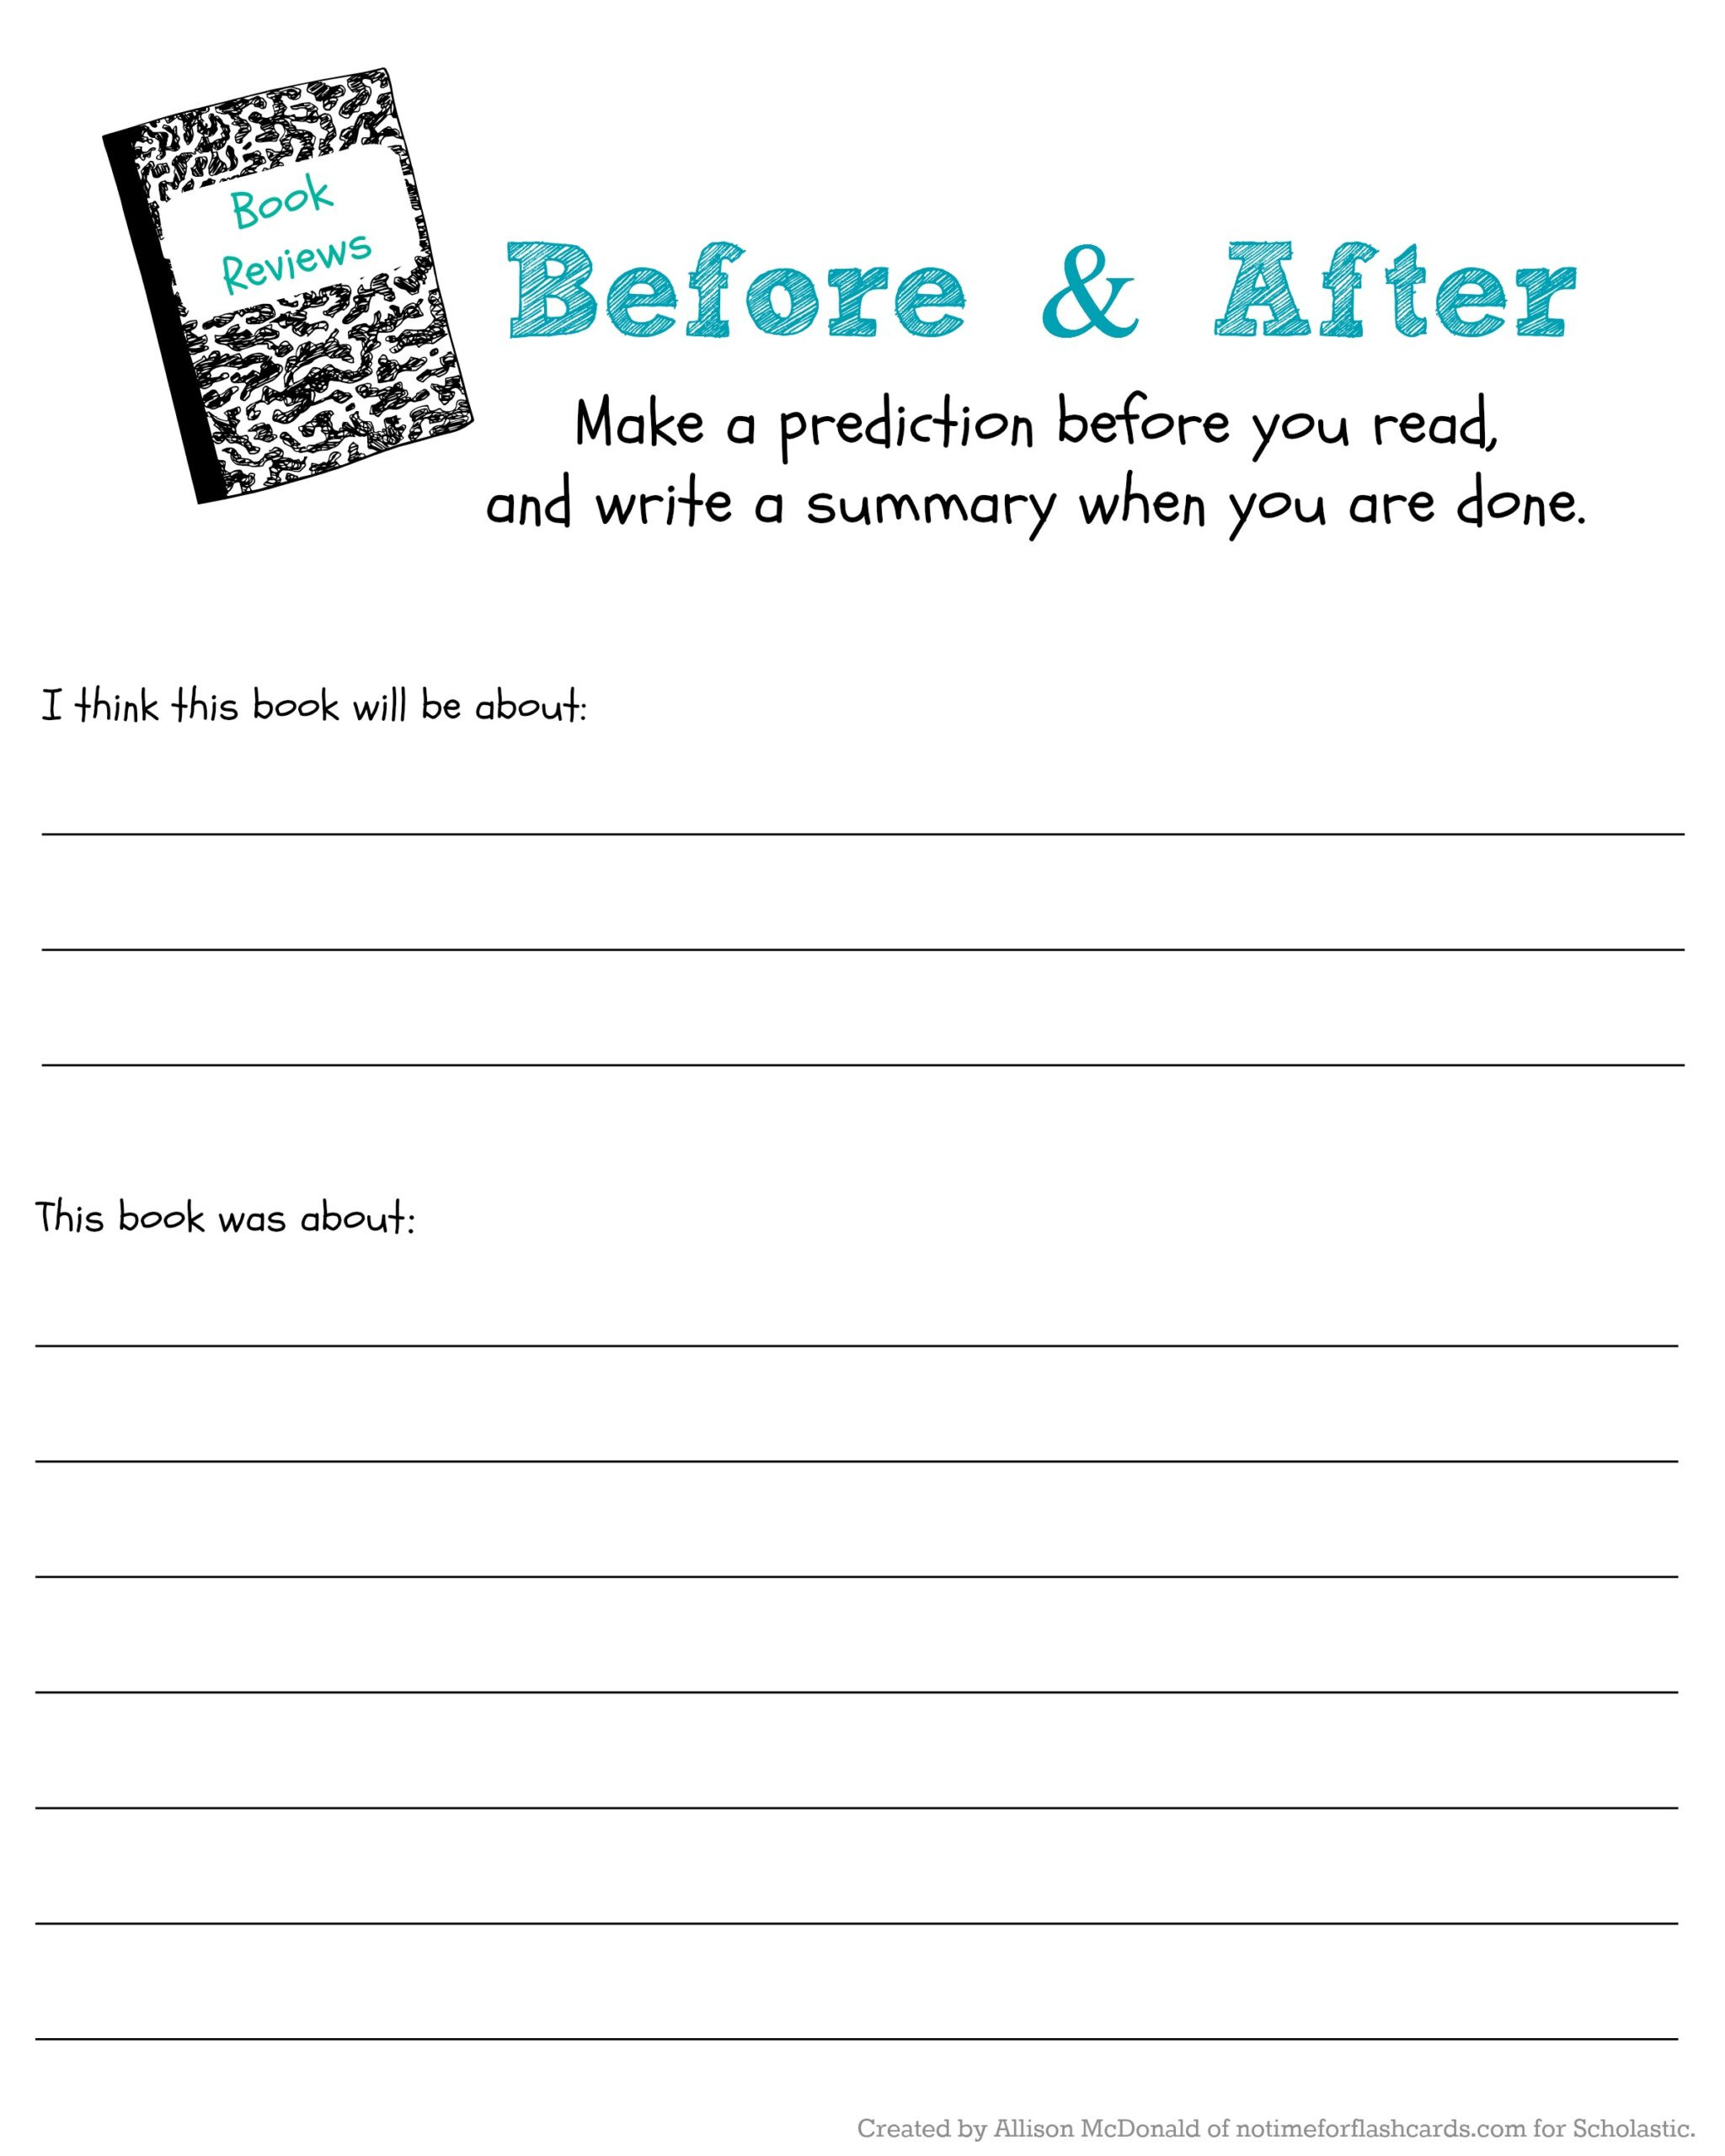 Making Predictions Worksheets 3rd Grade Judge Book by Its Cover to Predict Read Scholastic Parents